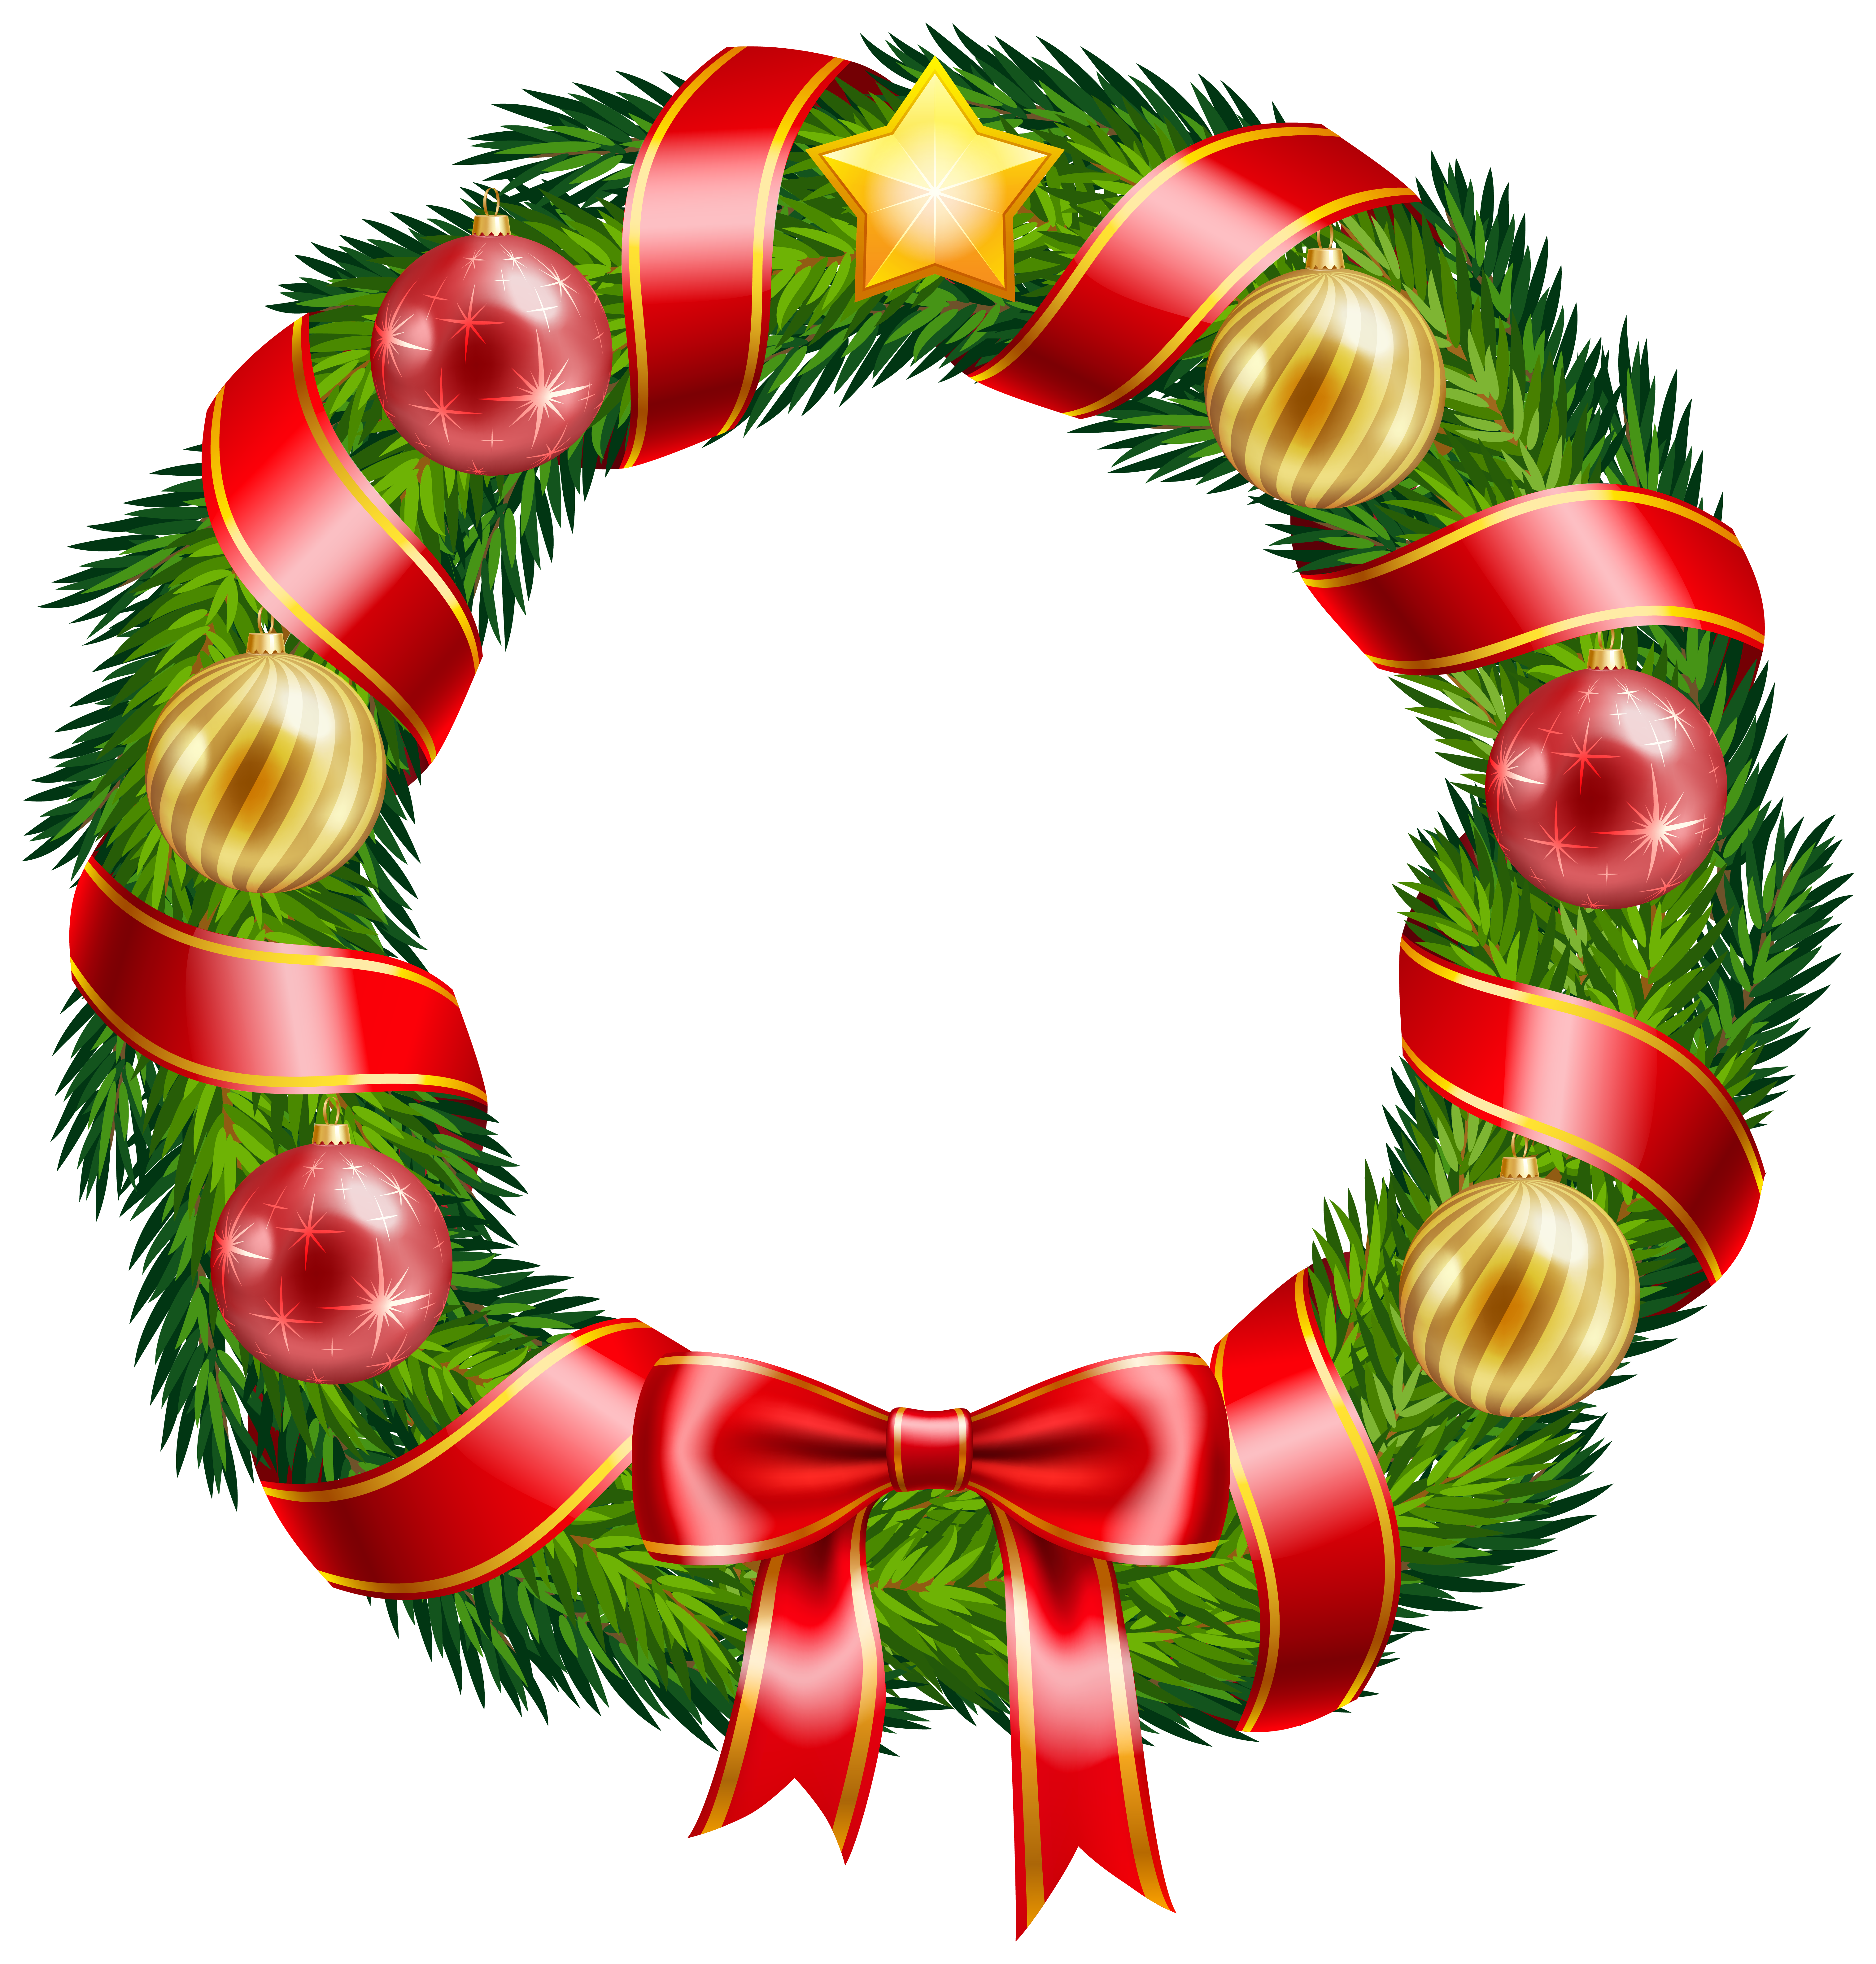 6058x6342 Christmas Wreath With Ornaments And Red Bow Clipart Png Image